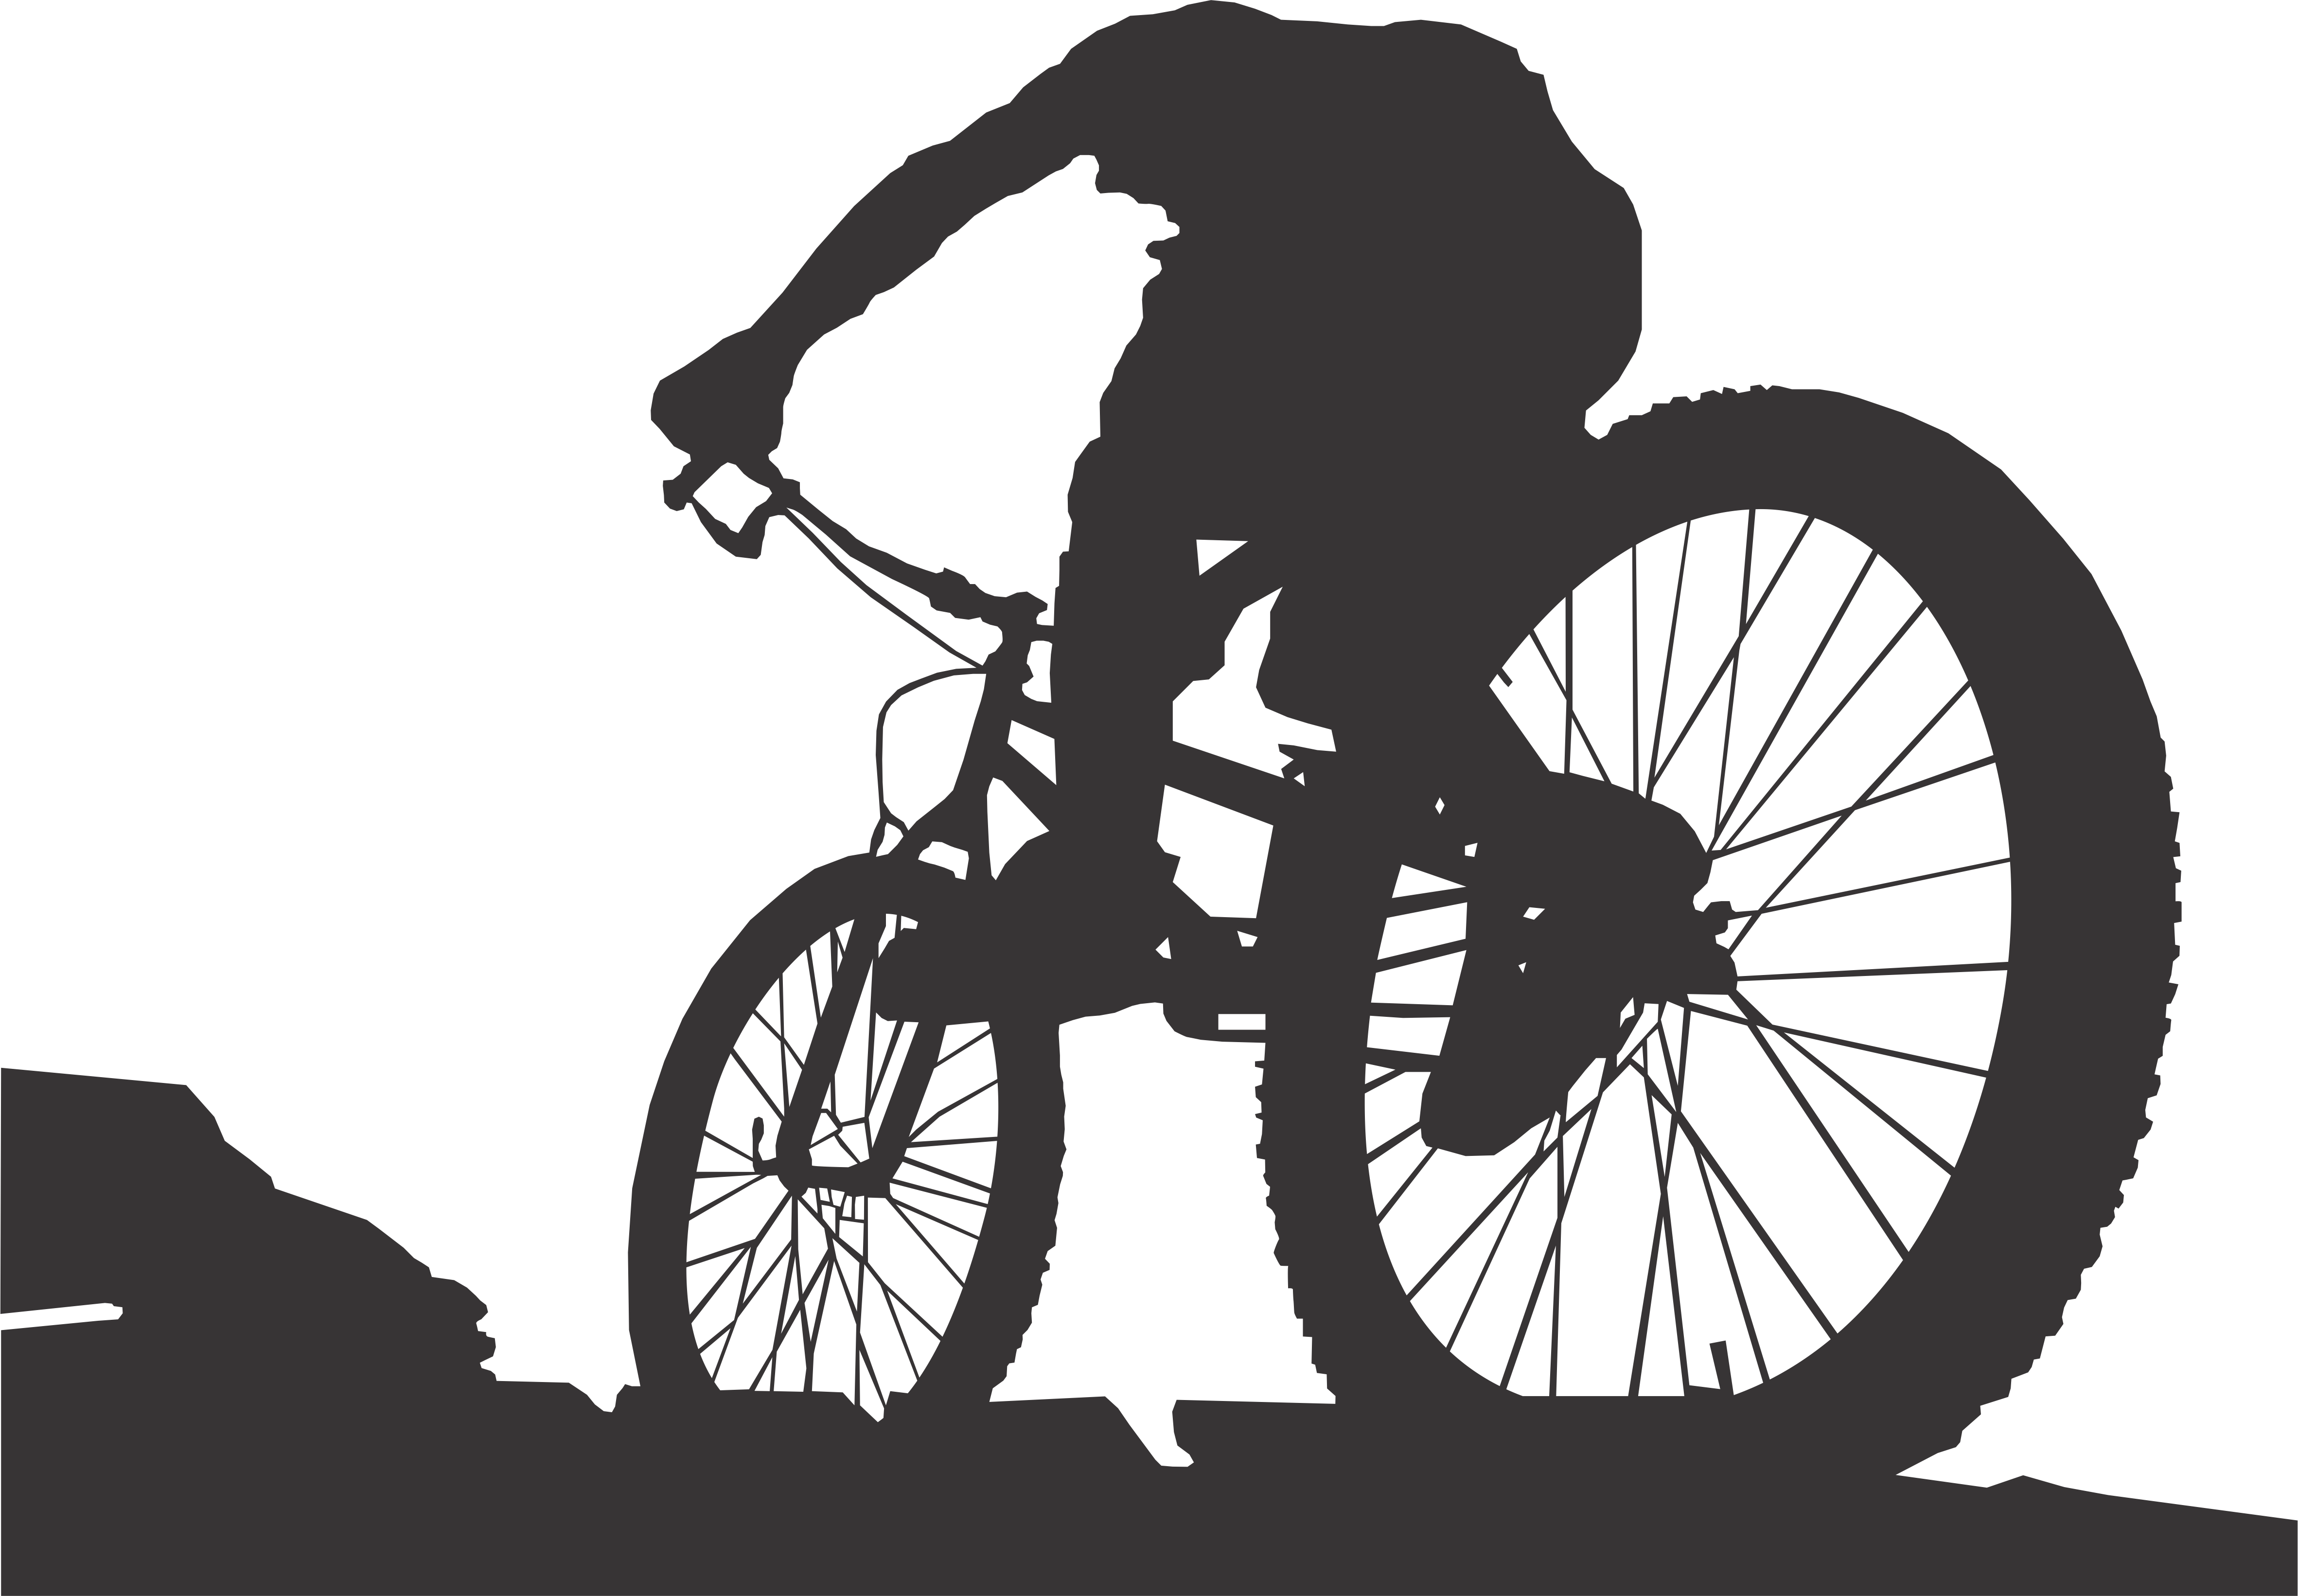 Cycle clipart mountain biker. Images of bike vector